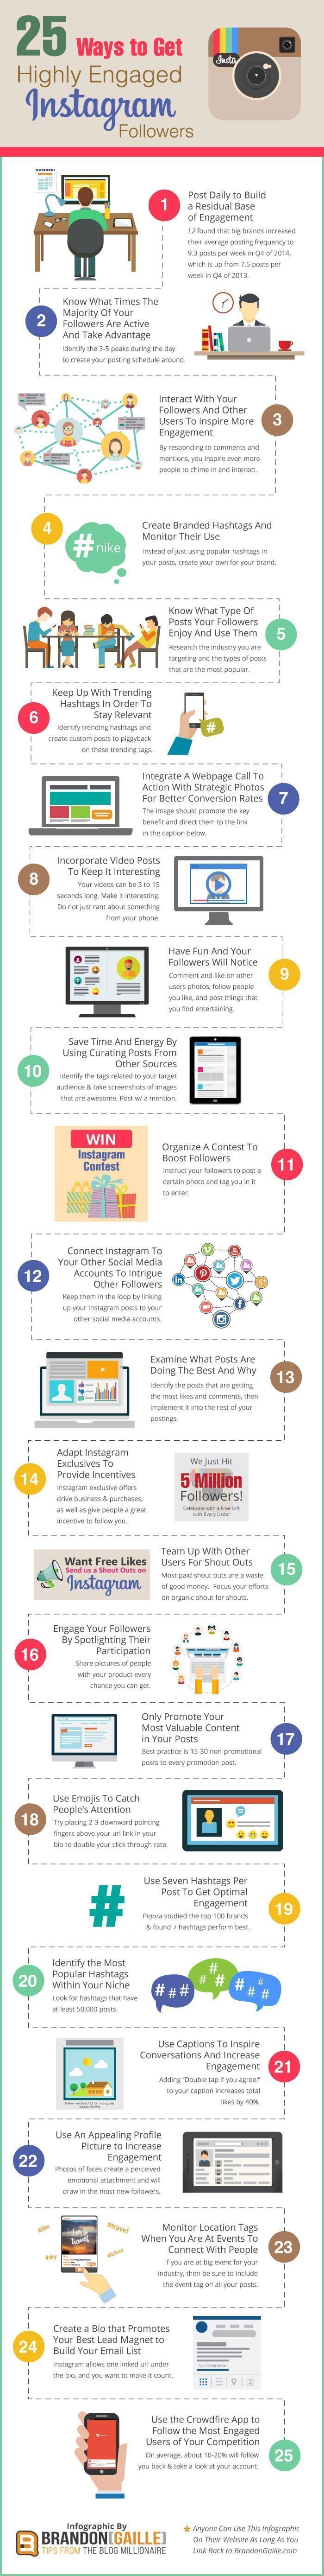 With all of the changes to the Facebook news feed algorithm, businesses are now focusing on building their Instagram followers and engagement. I am going to lay out the 25 techniques, used by Instagram pros, that will help you get tens of thousands of highly engaged followers. These followers will like, comment, and even sign